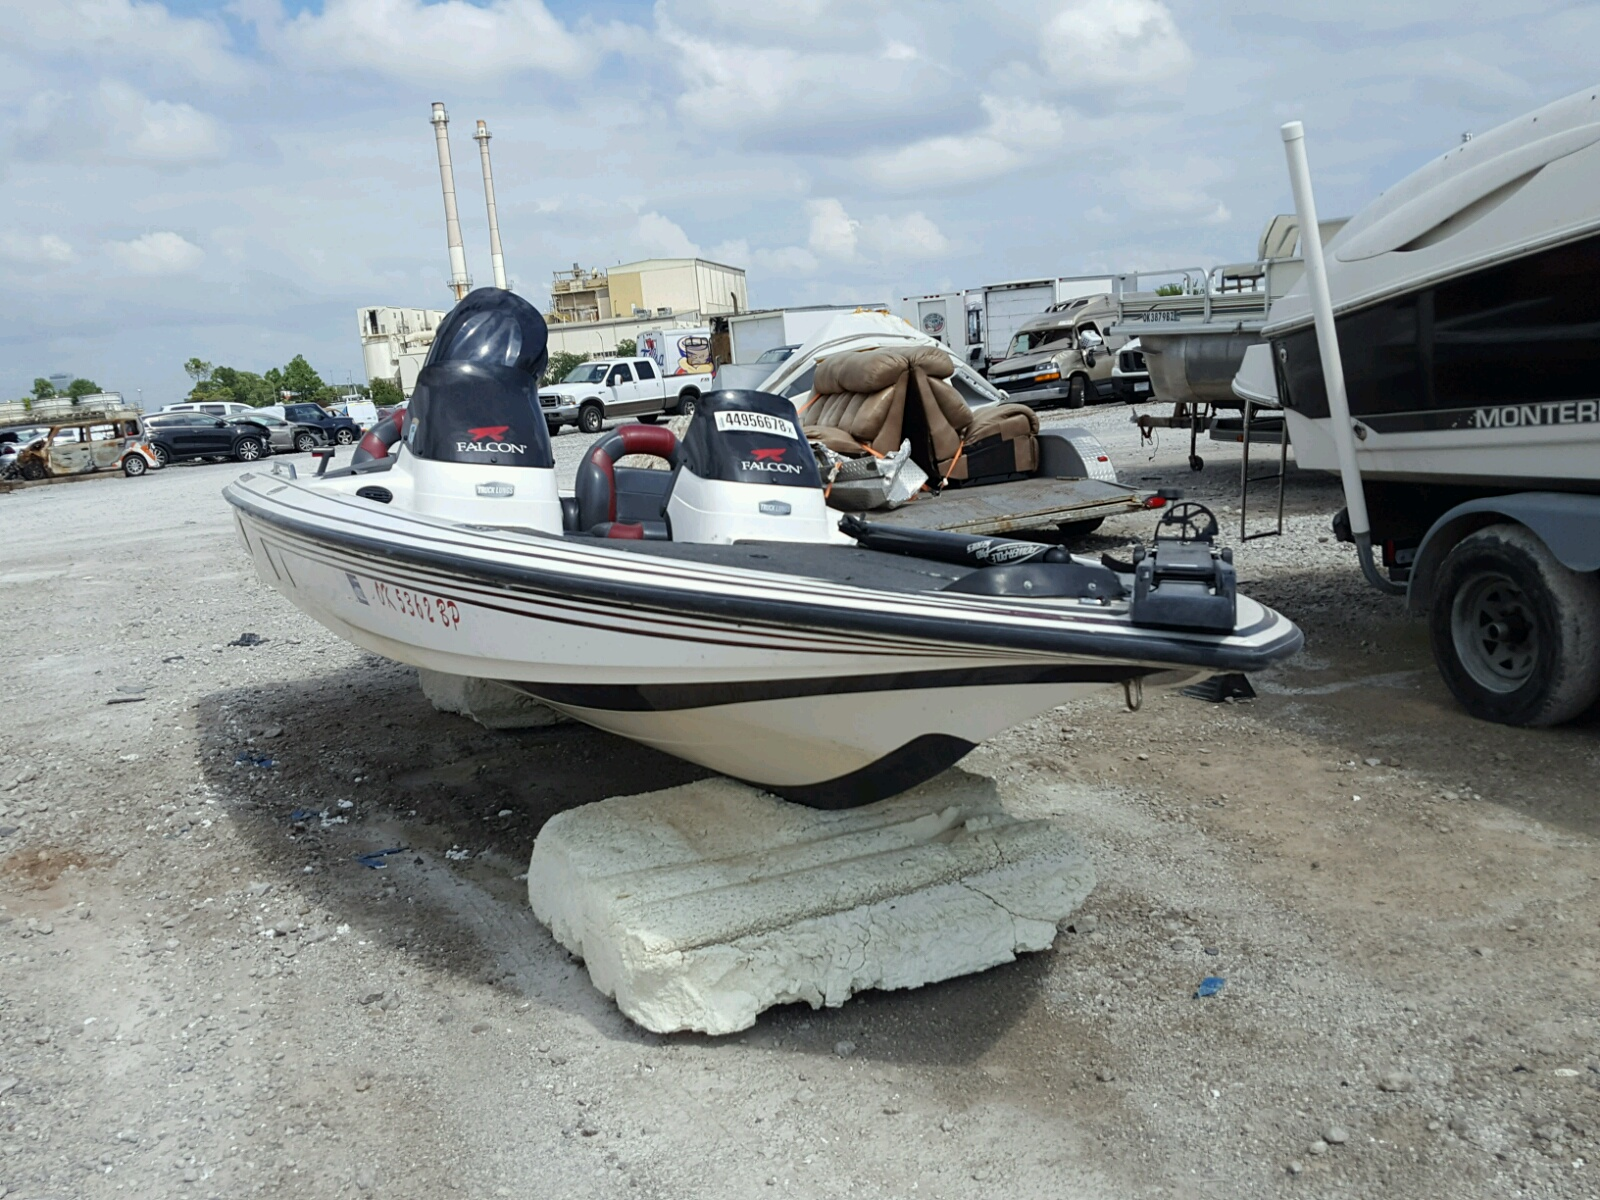 Salvage 2000 Boat MARINE LOT for sale